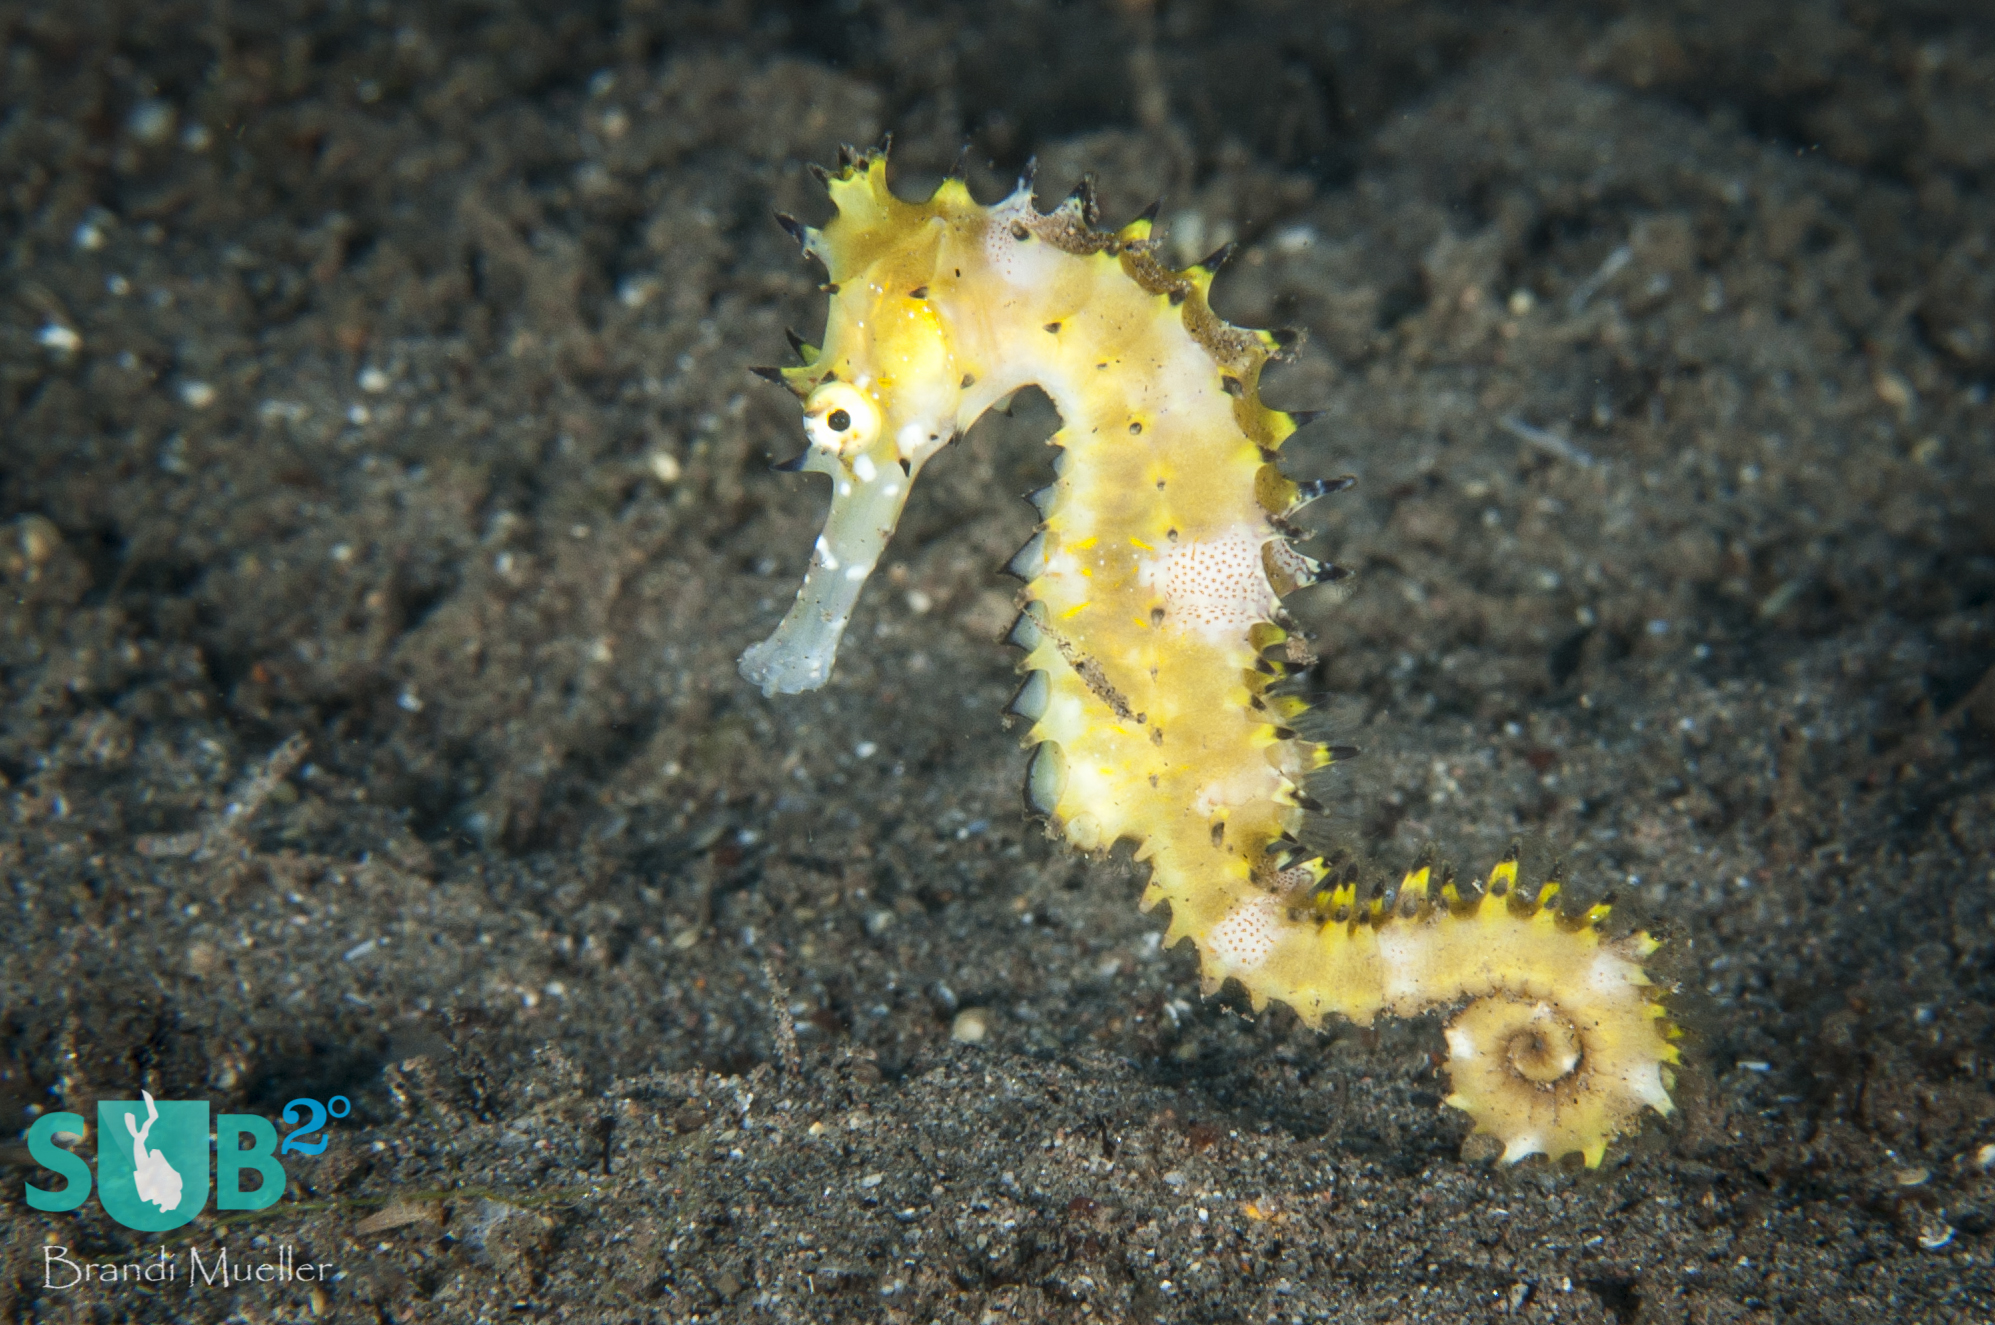 Thorny seahorses, such as this one, are often removed from the ocean in great quantities to be dried for souvenirs or to be used in traditional medicines. These practices could lead to endangering the species.